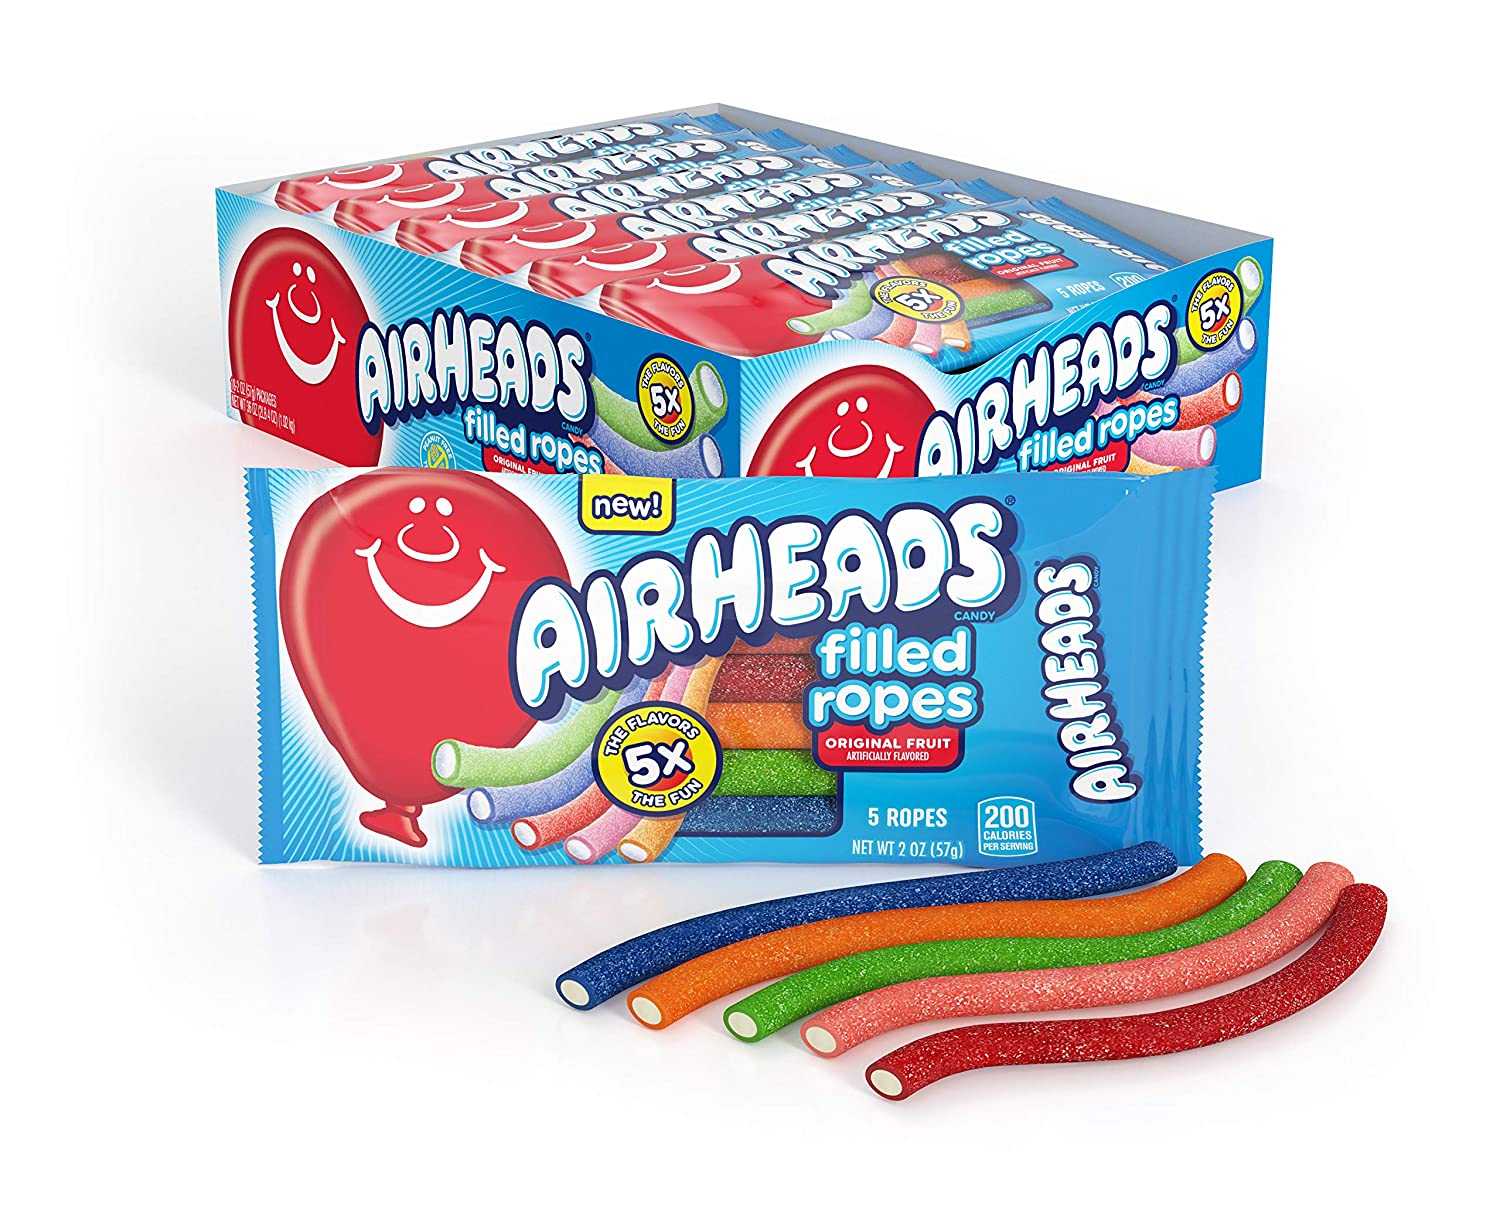 Airheads Filled Ropes Candy Original Fruit 2 18 Pack Ranking TOP9 Oz Max 78% OFF of